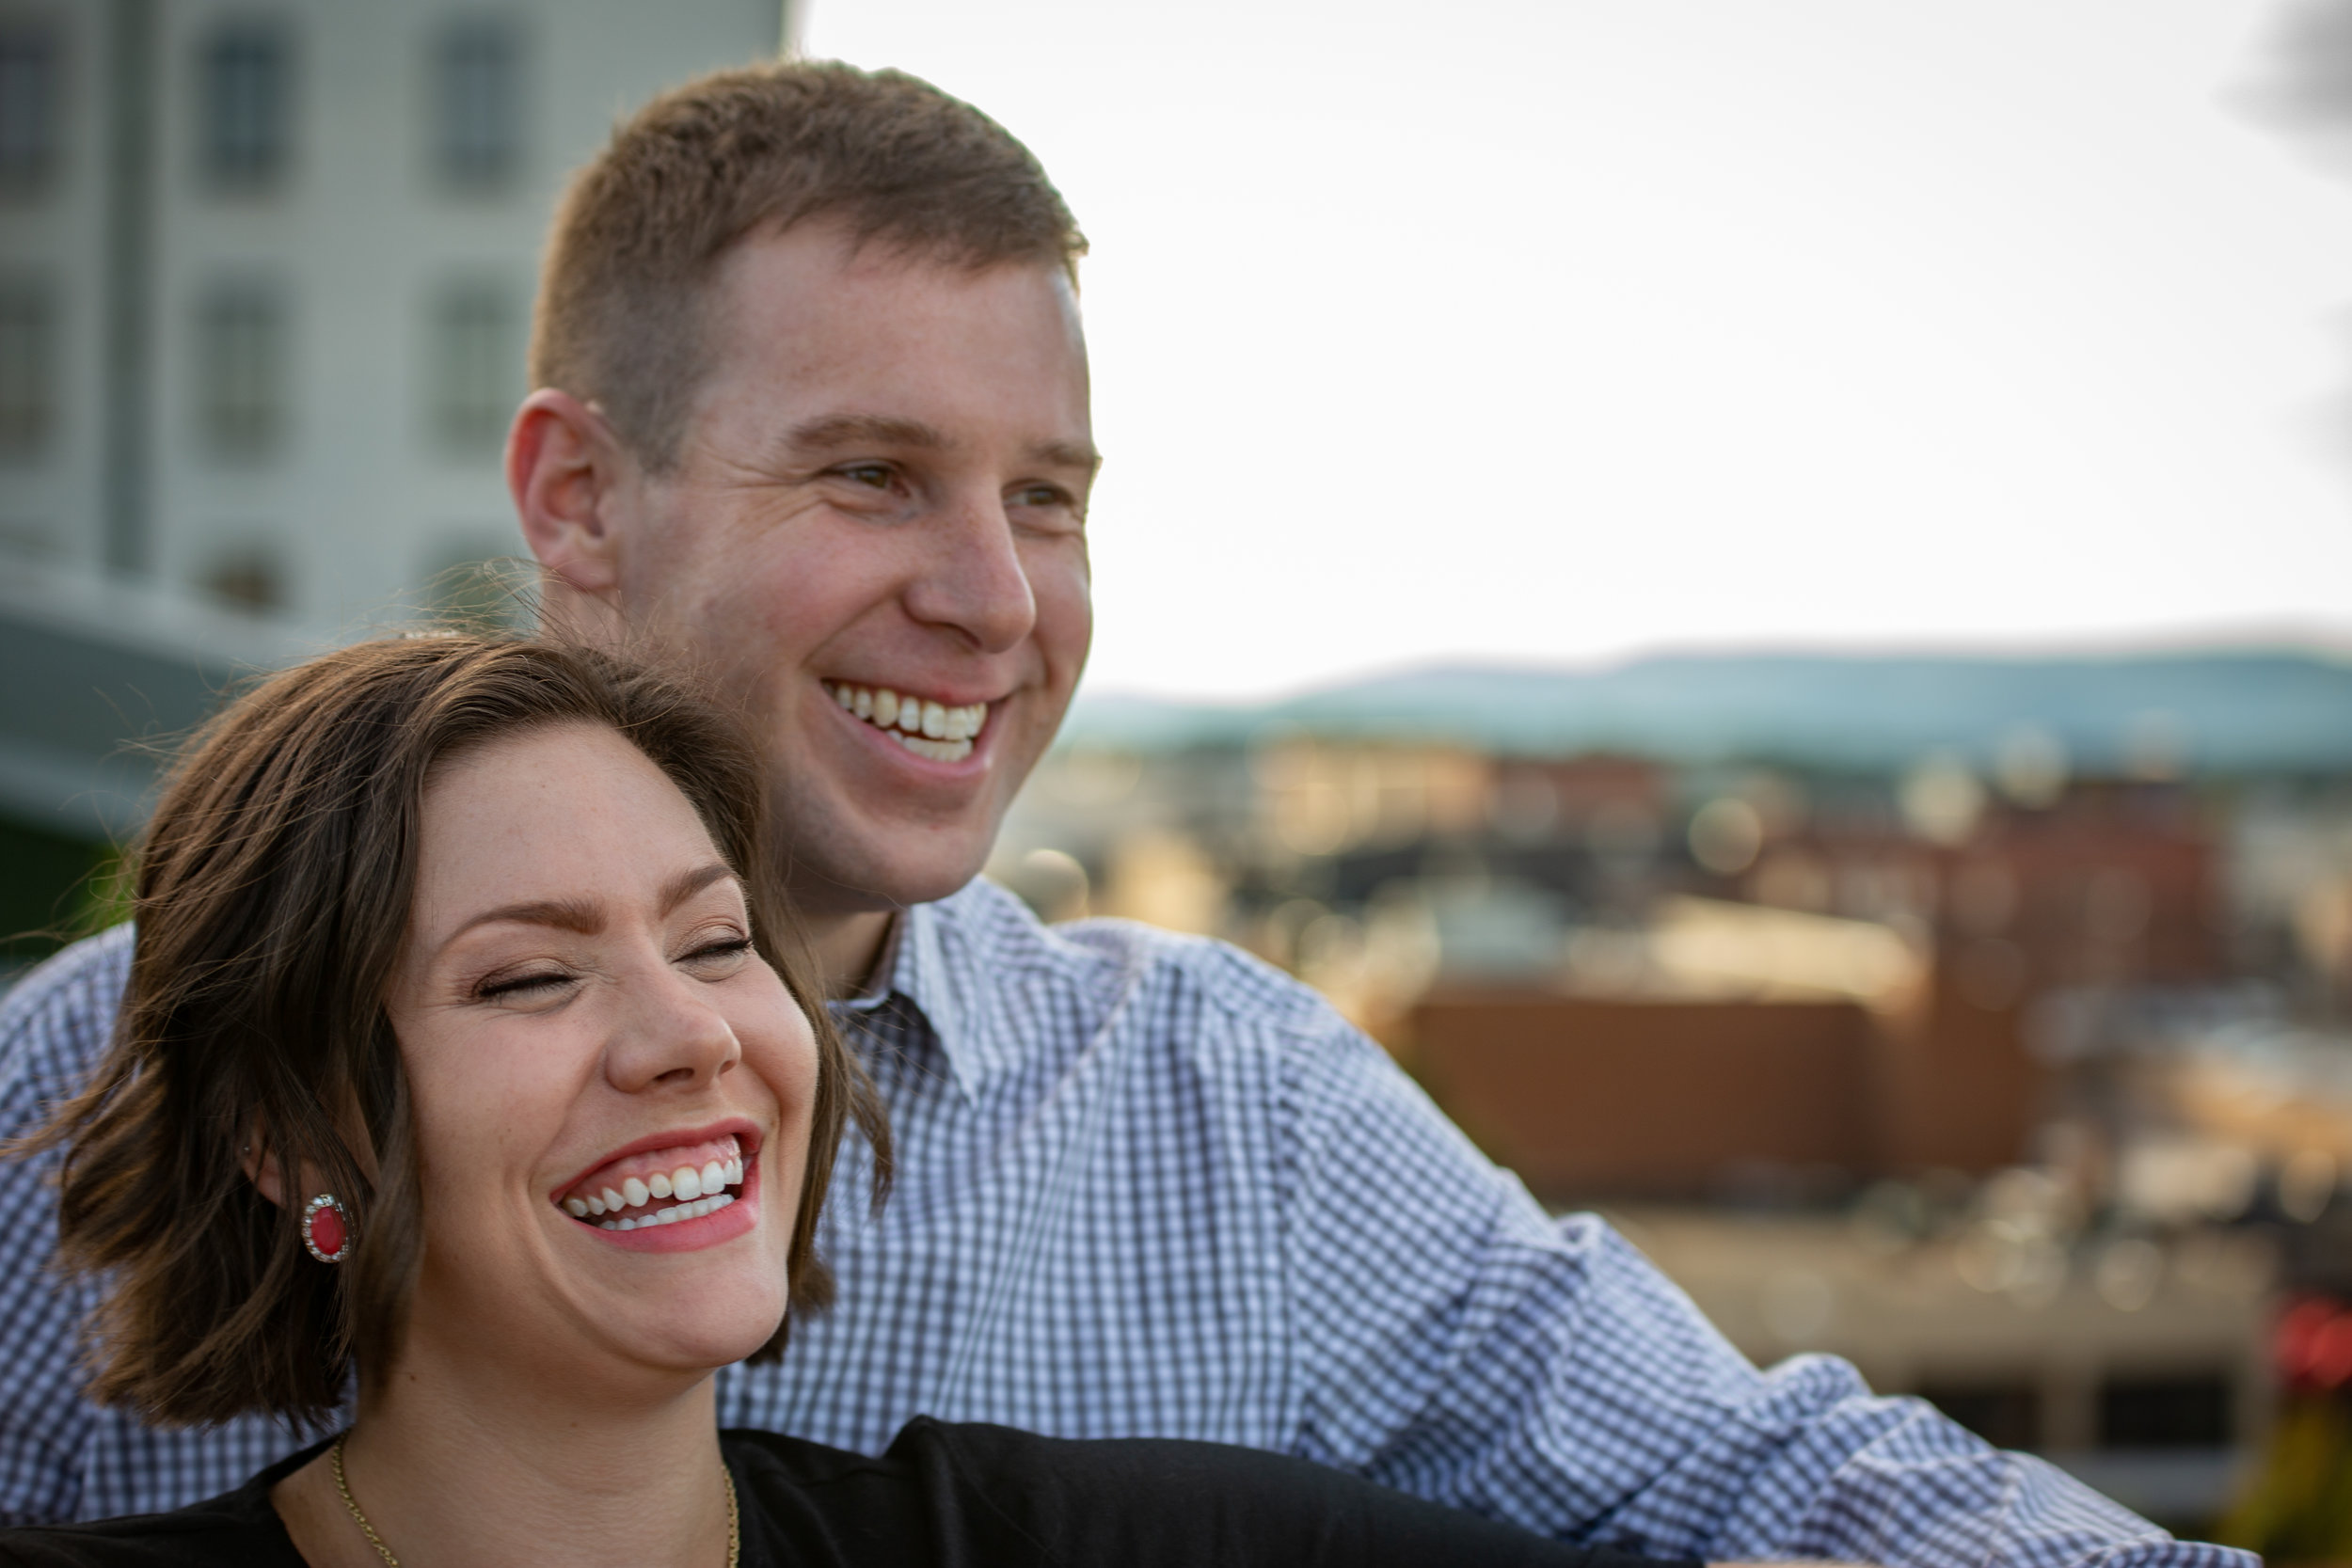 center-in-the-square-downtown-roanoke-urban-rooftop-engagment-wedding-love-couple-smiling-laughing-engaged